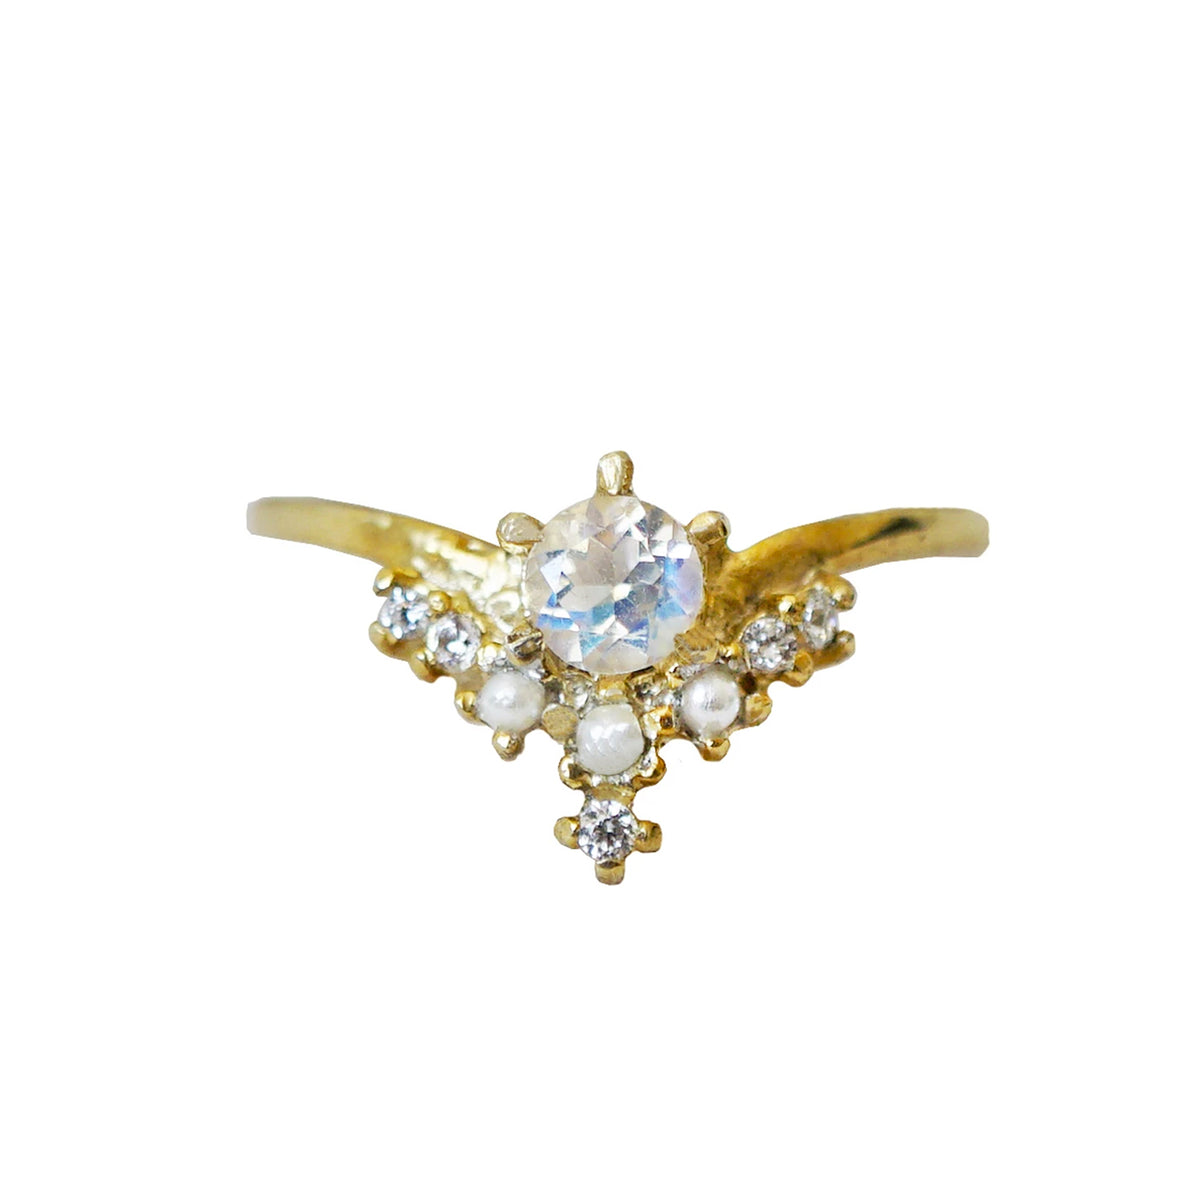 Angelic Moonstone Pearl Ring